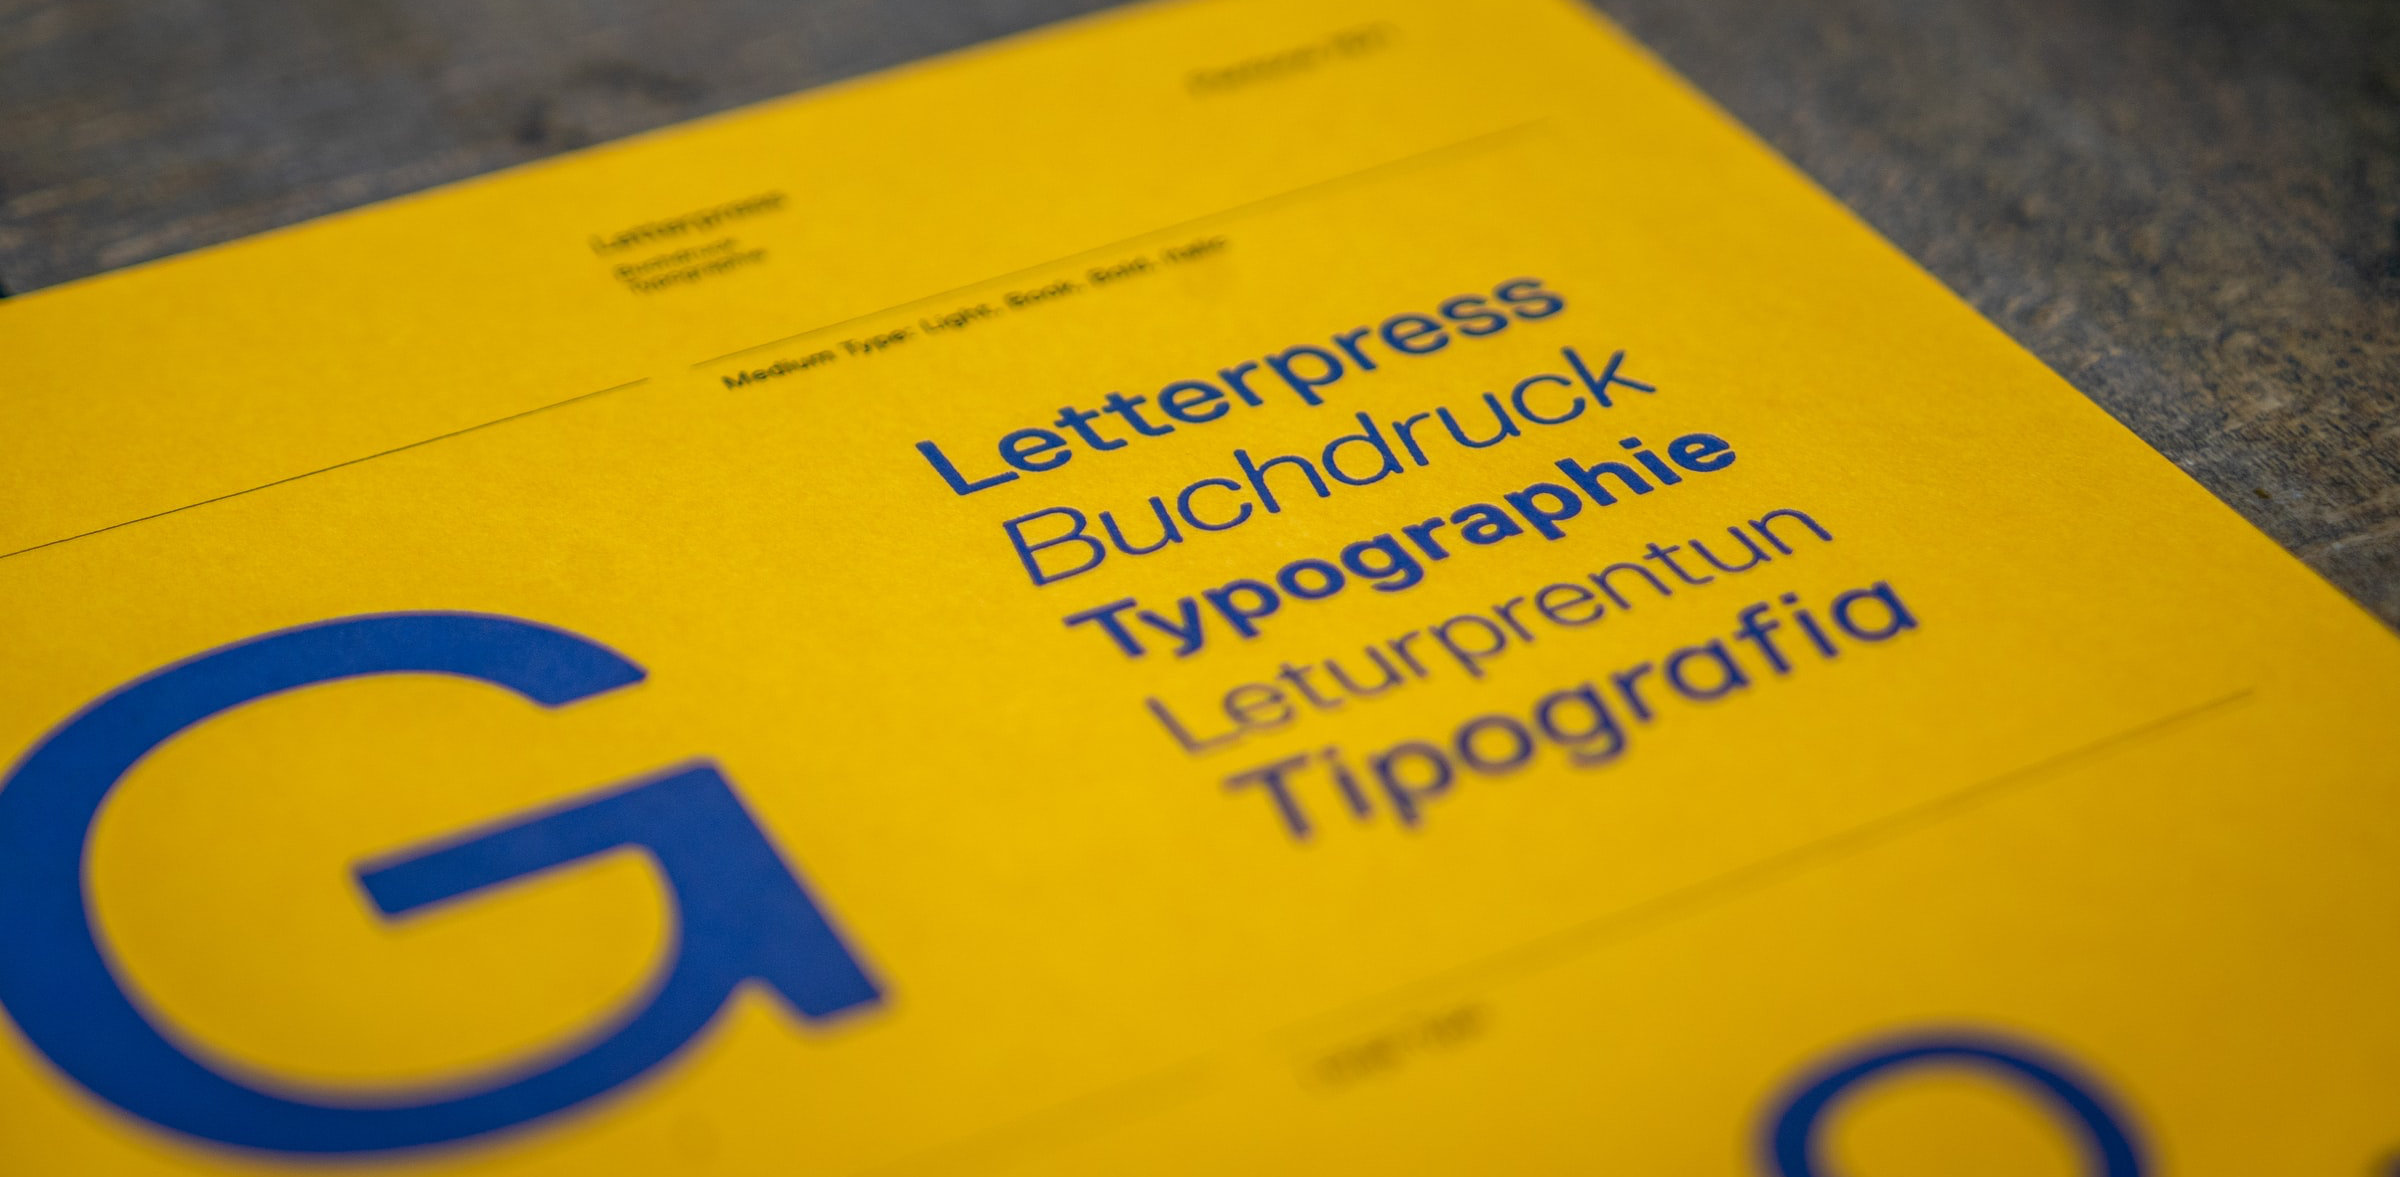 blue typography letters on yellow background